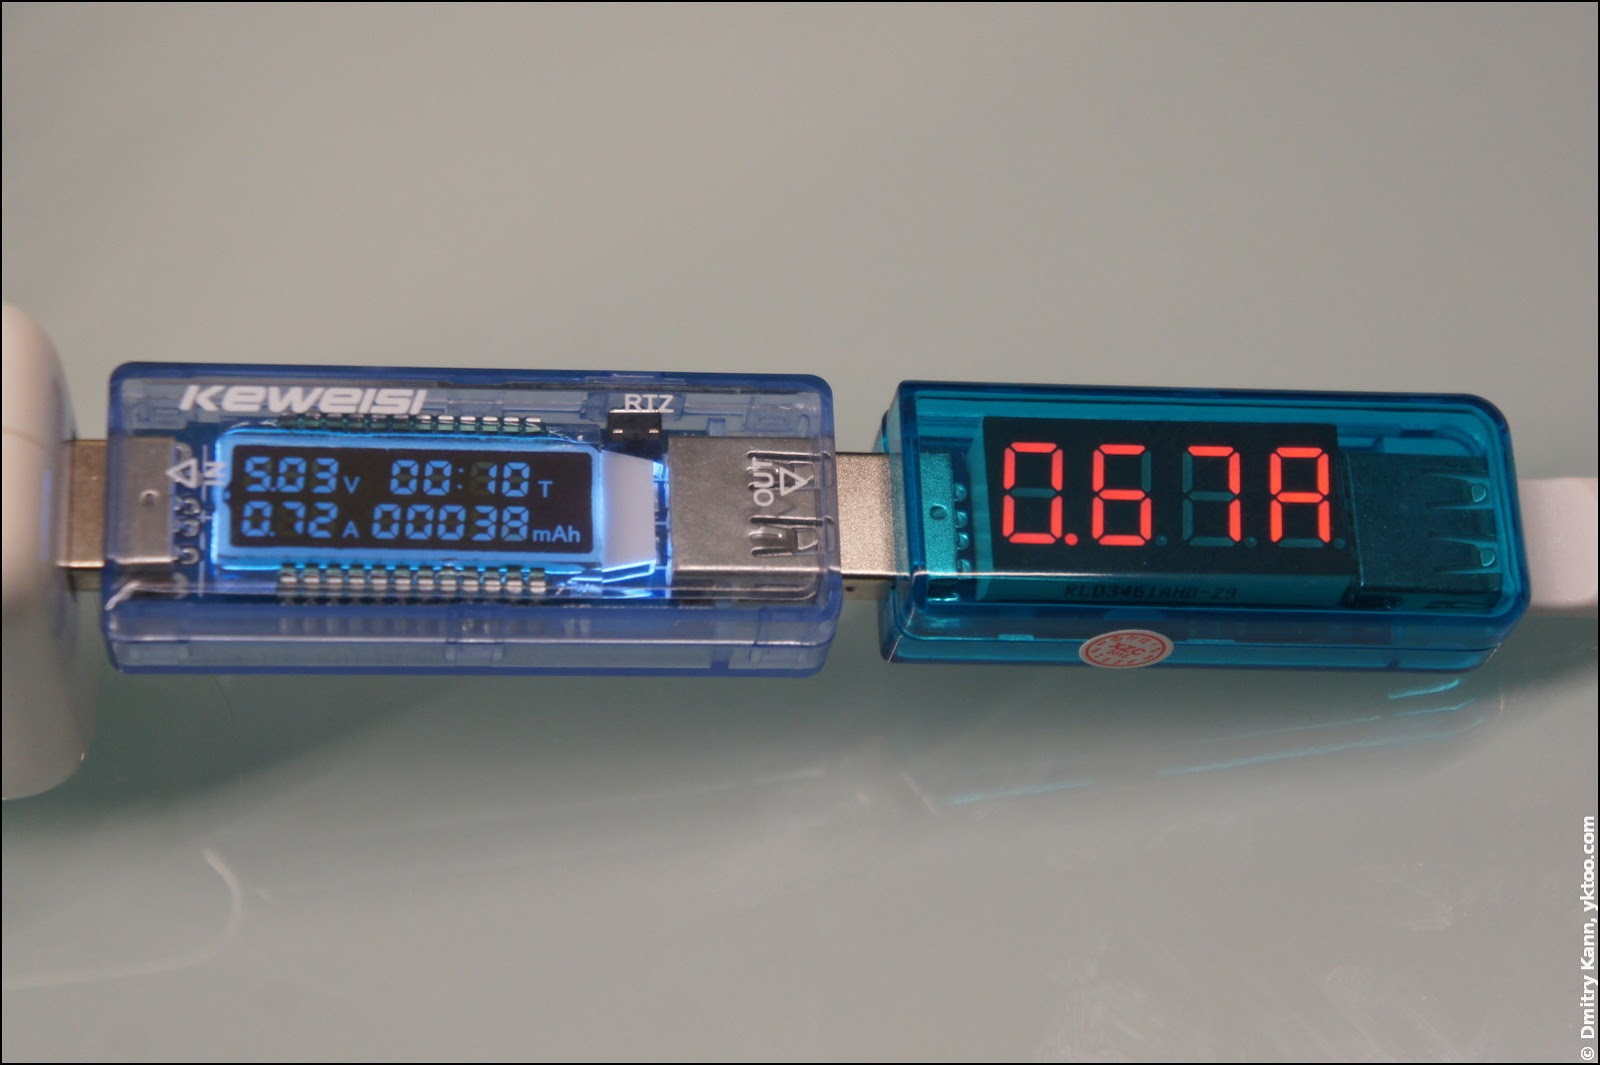 Measuring current by both testers, Apple iPod DC adapter.